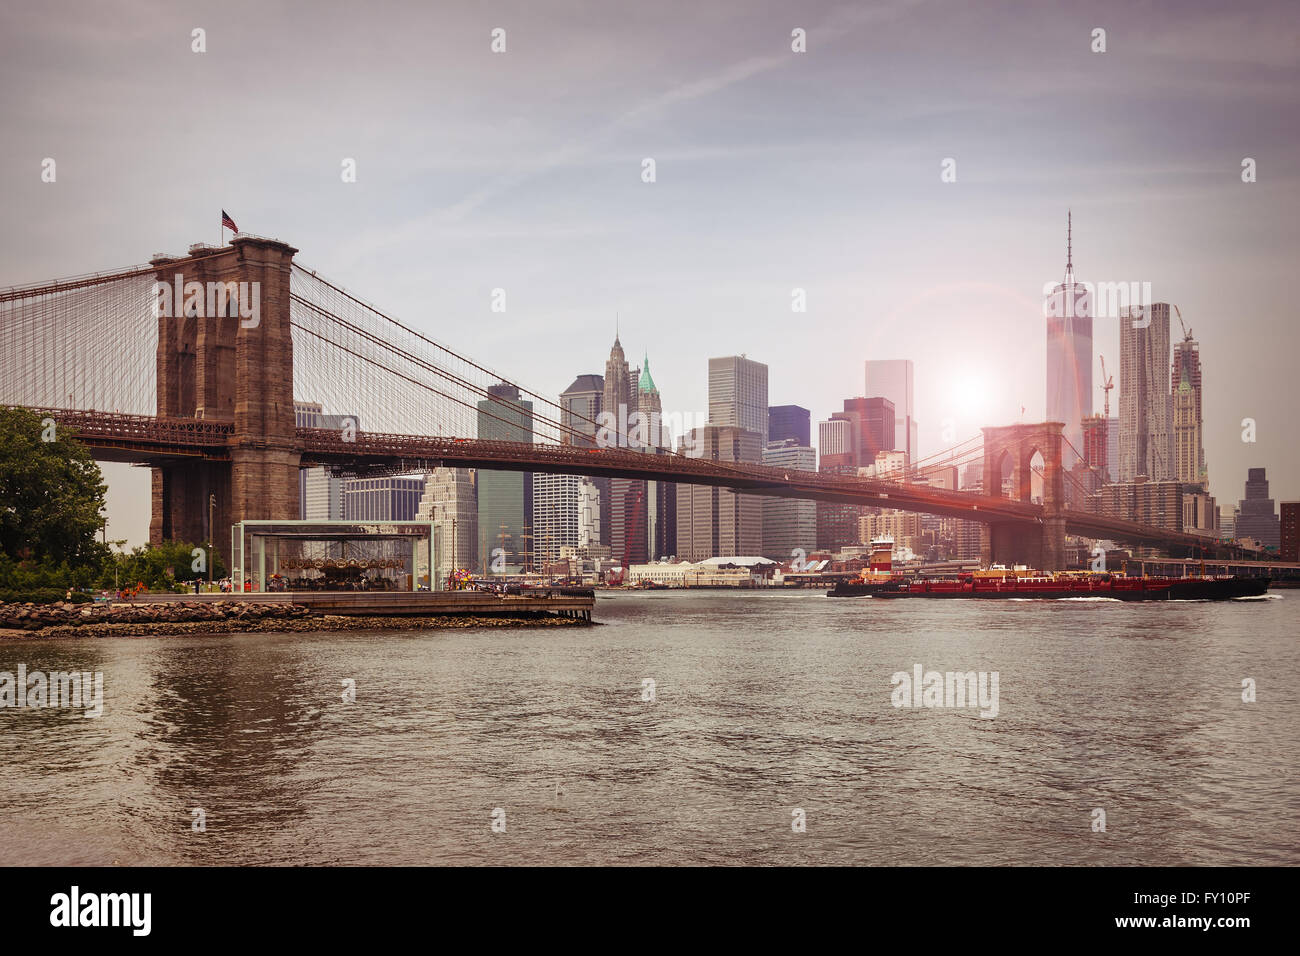 Brooklyn bridge at dusk, New York City - Stock Image